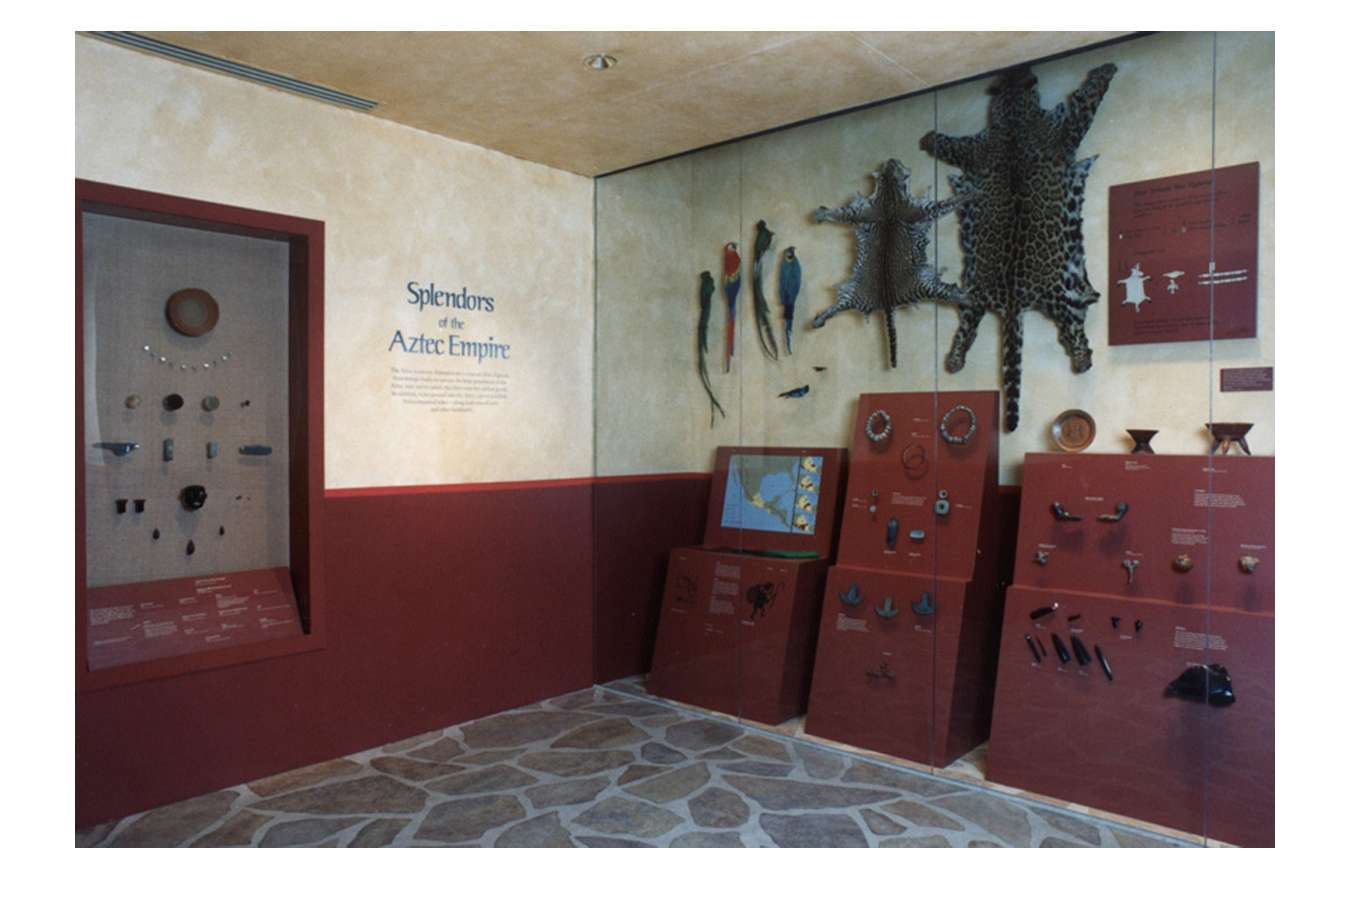 Seeds Aztec Trade : The exhibit begins with pre-columbian culture in the Americas